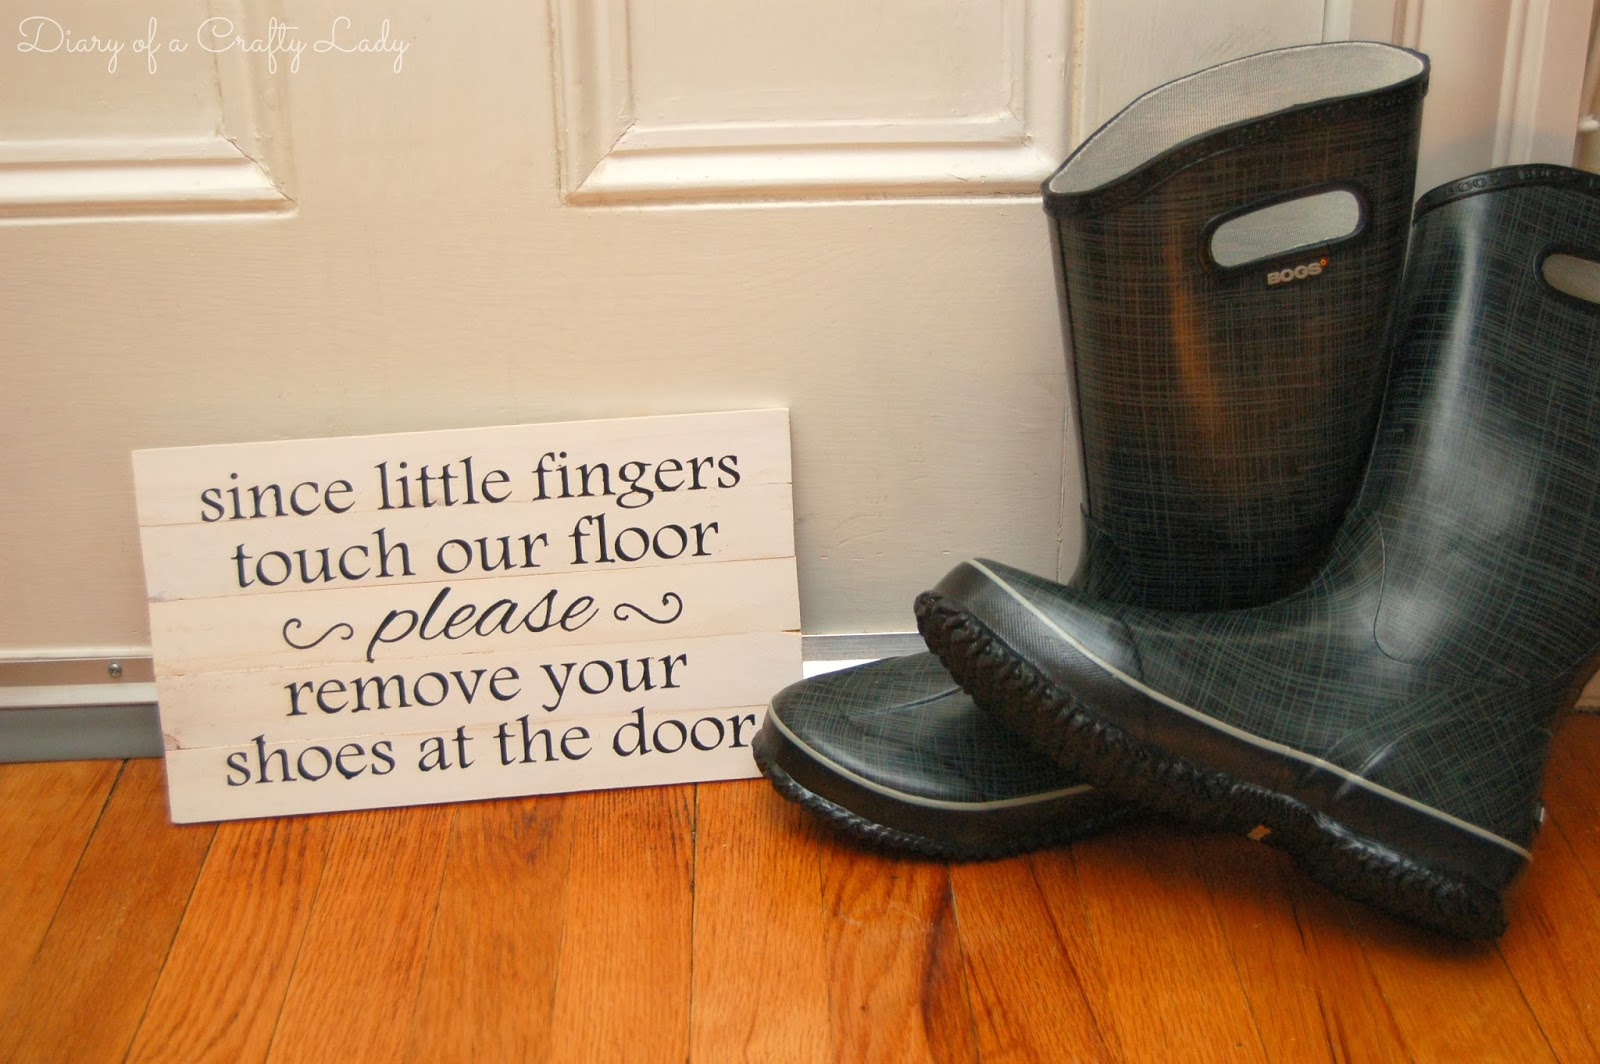 http://craftyladylindsay.blogspot.com/2014/01/please-remove-your-shoes-sign-made-with.html